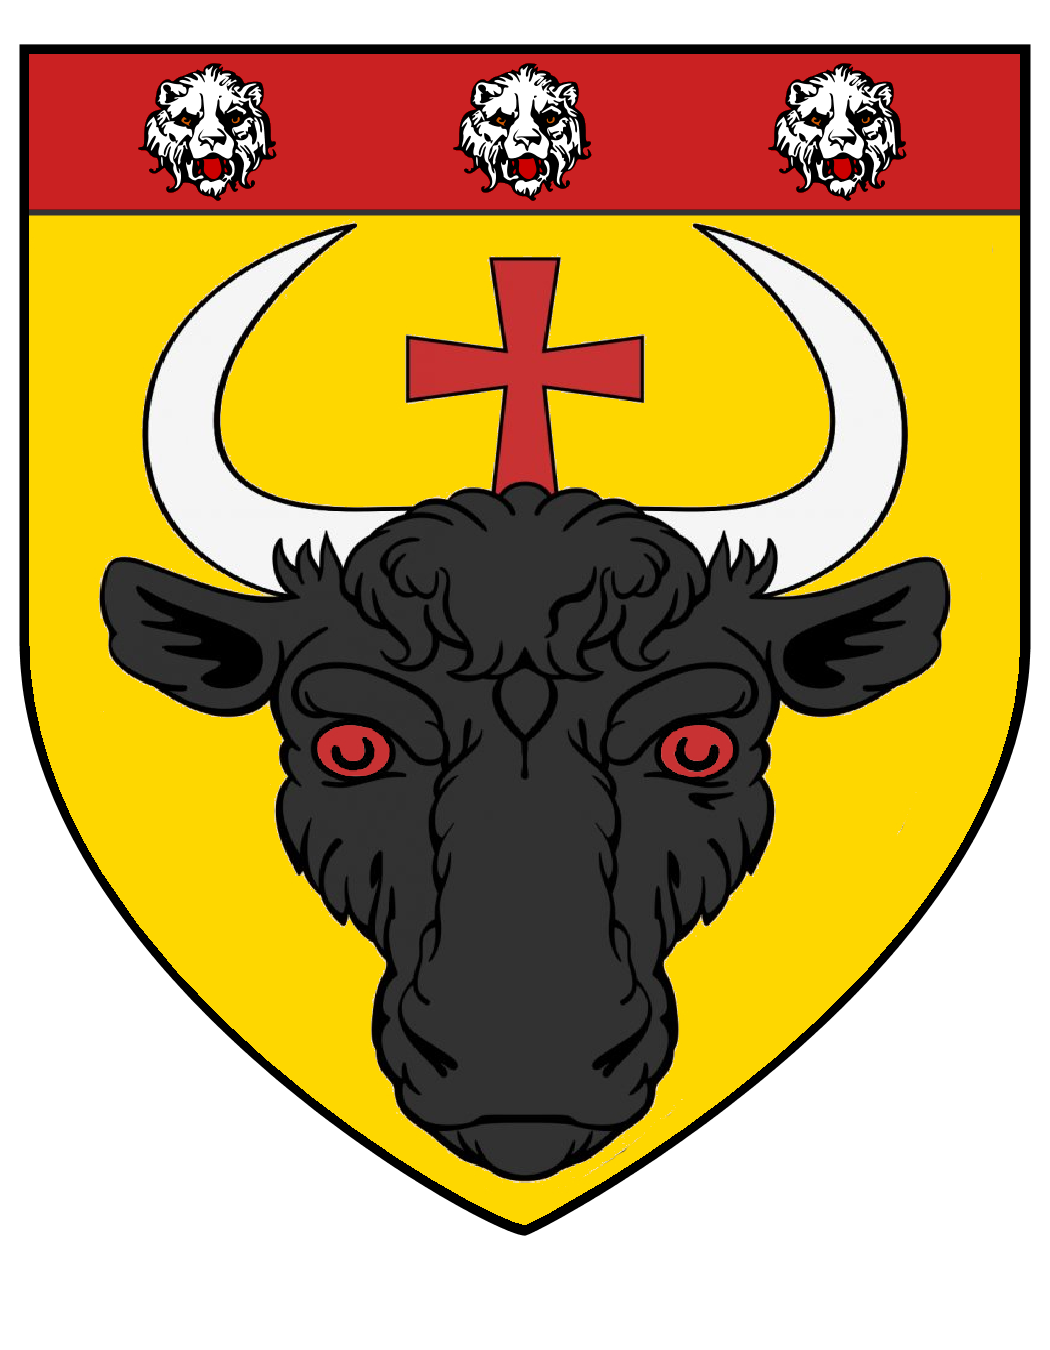 coat_of_arms_Hahold_Hahot.png